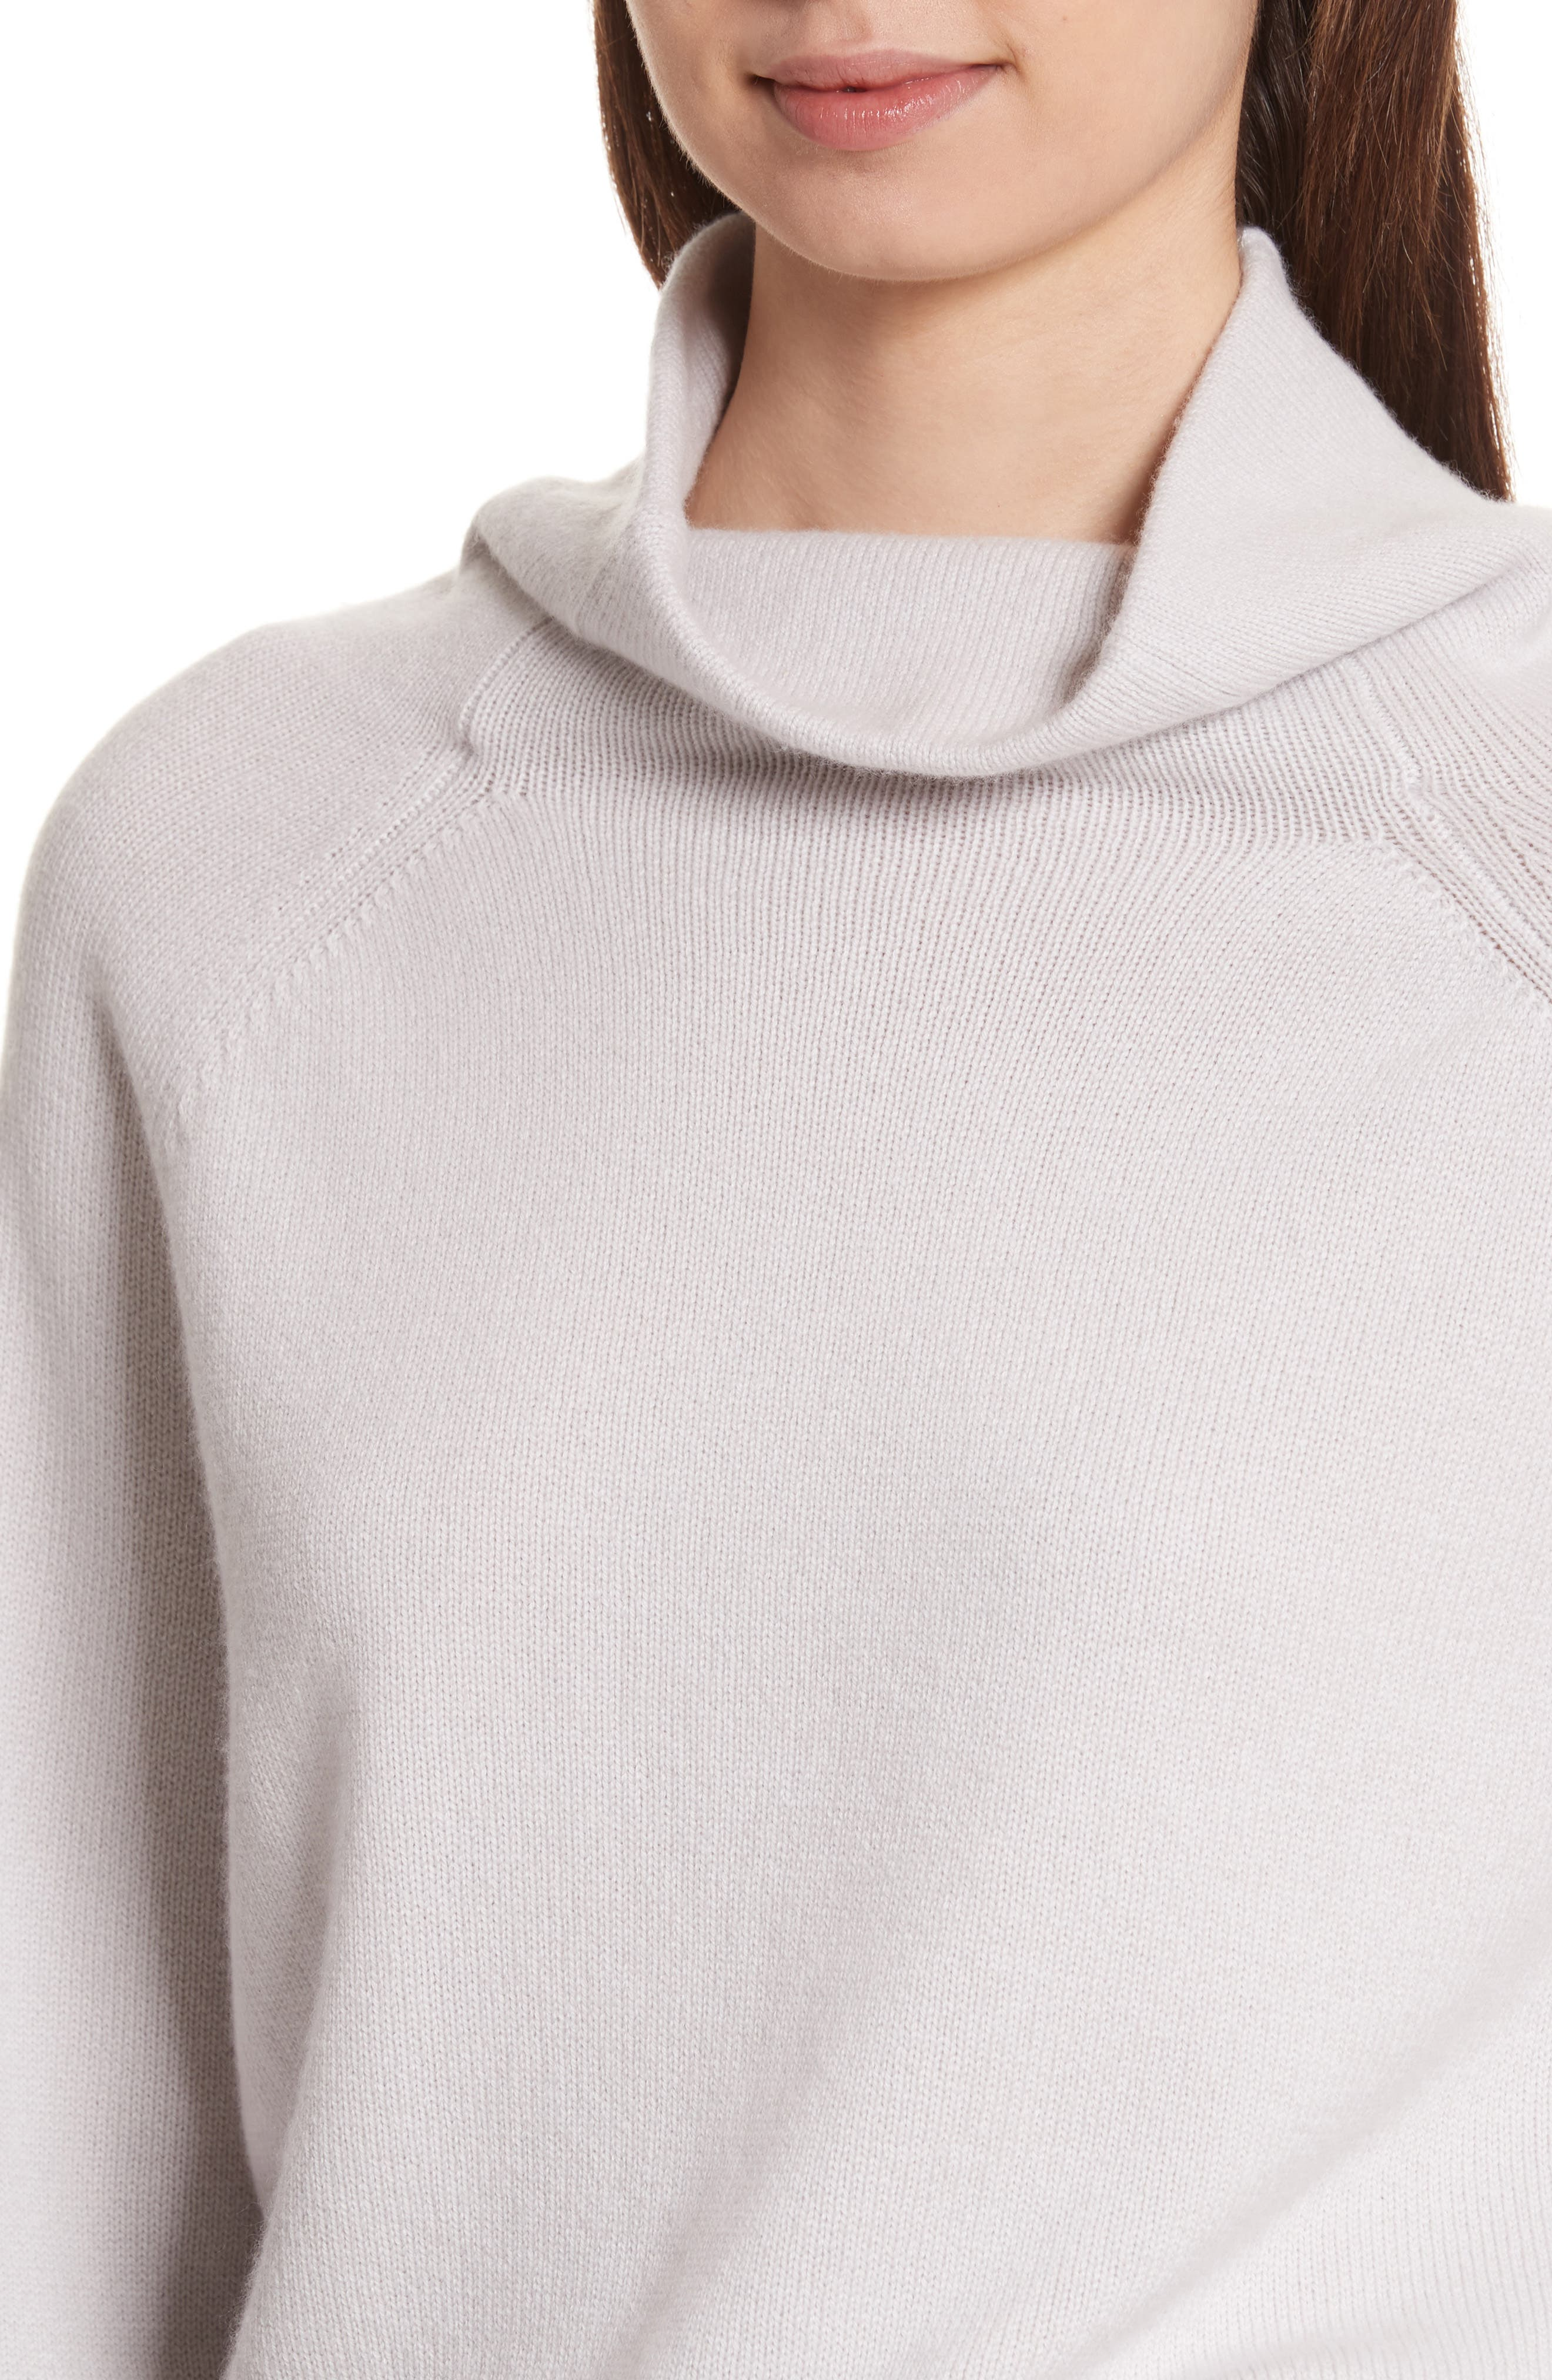 Alternate Image 3  - Allude Balloon Sleeve Cashmere Turtleneck Sweater